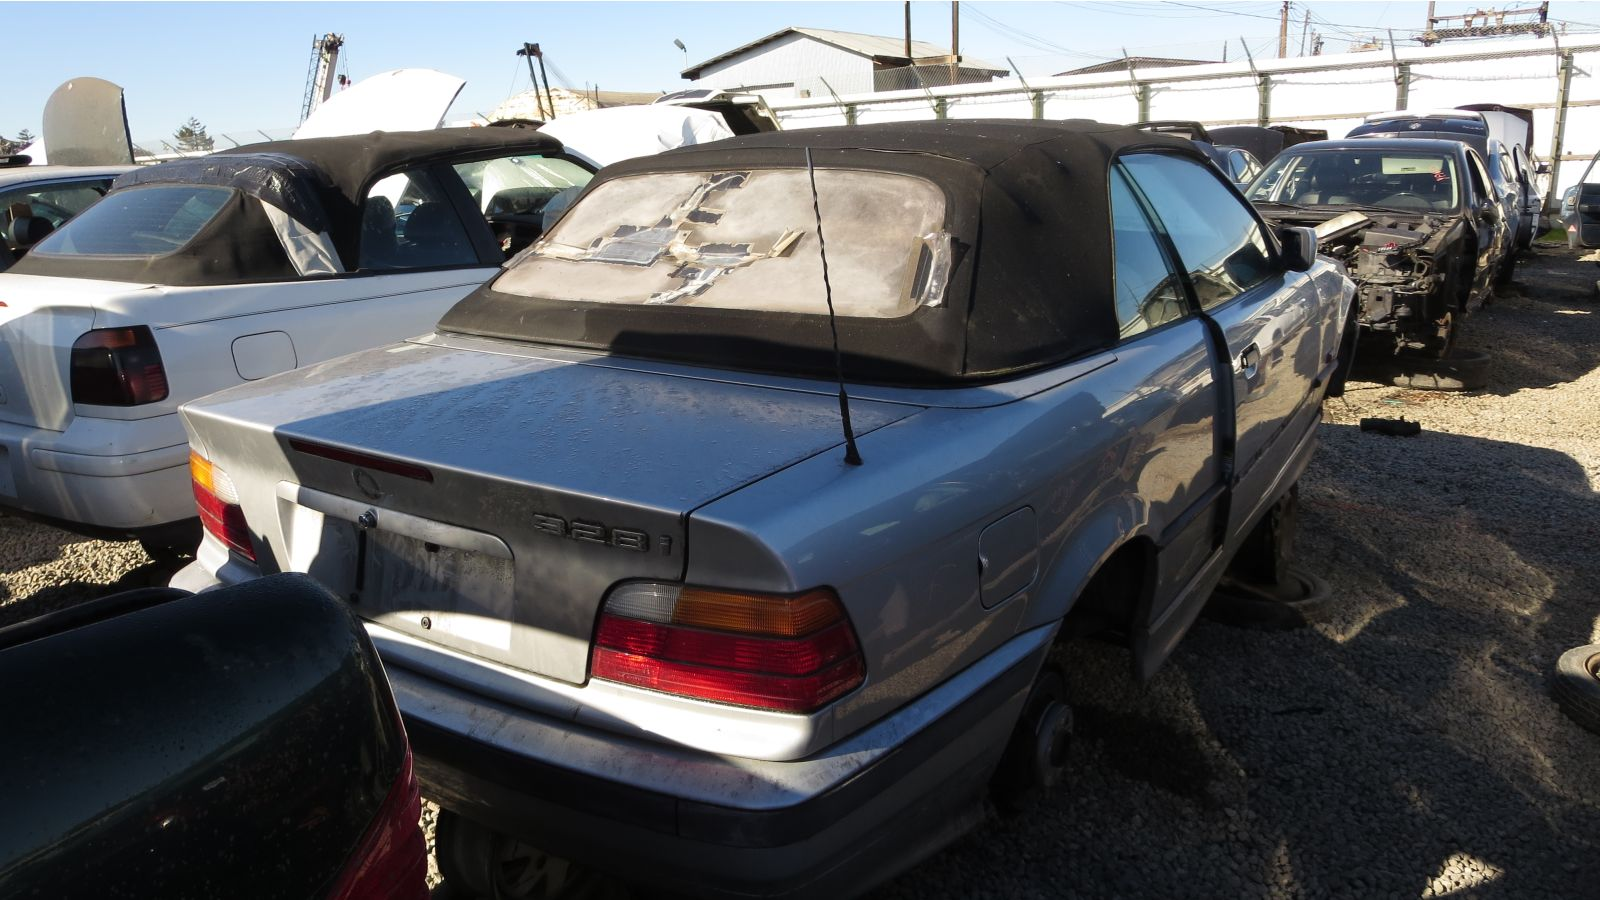 hight resolution of 1996 bmw 328i e36 in california junkyard rh rear view 2016 murilee martin